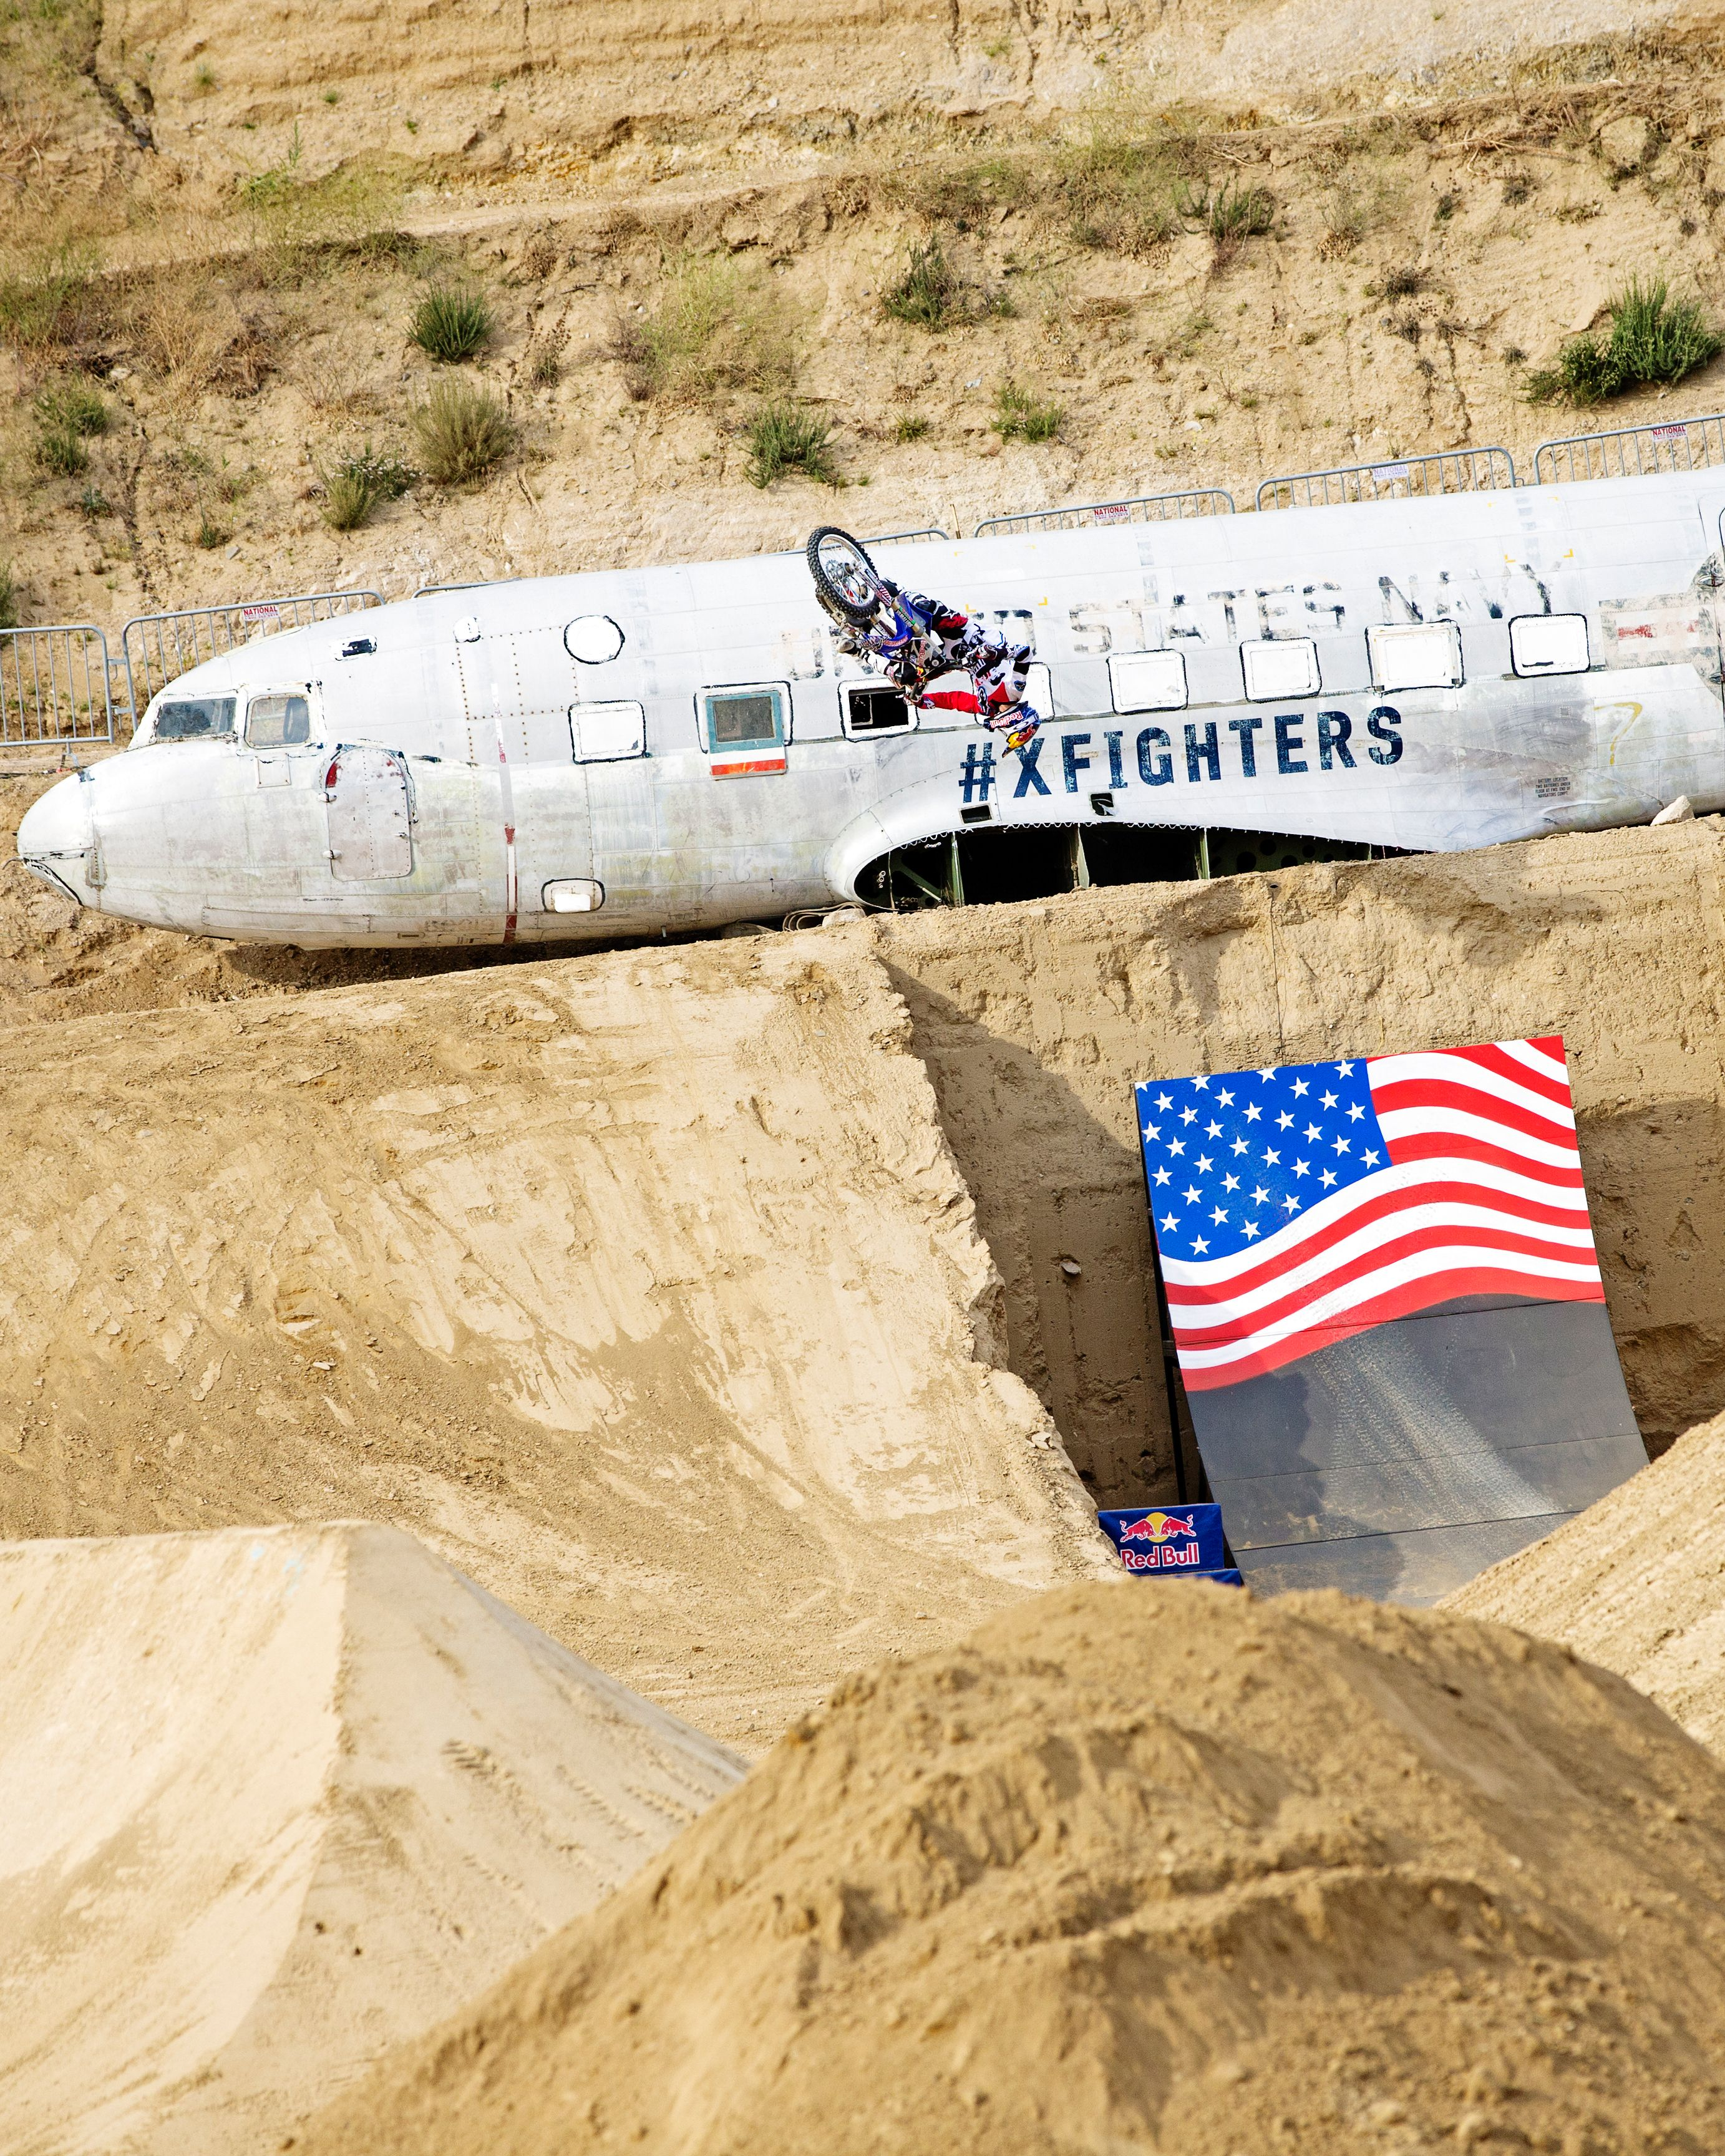 Re-live the Red Bull X-Fighters from Glen Helen